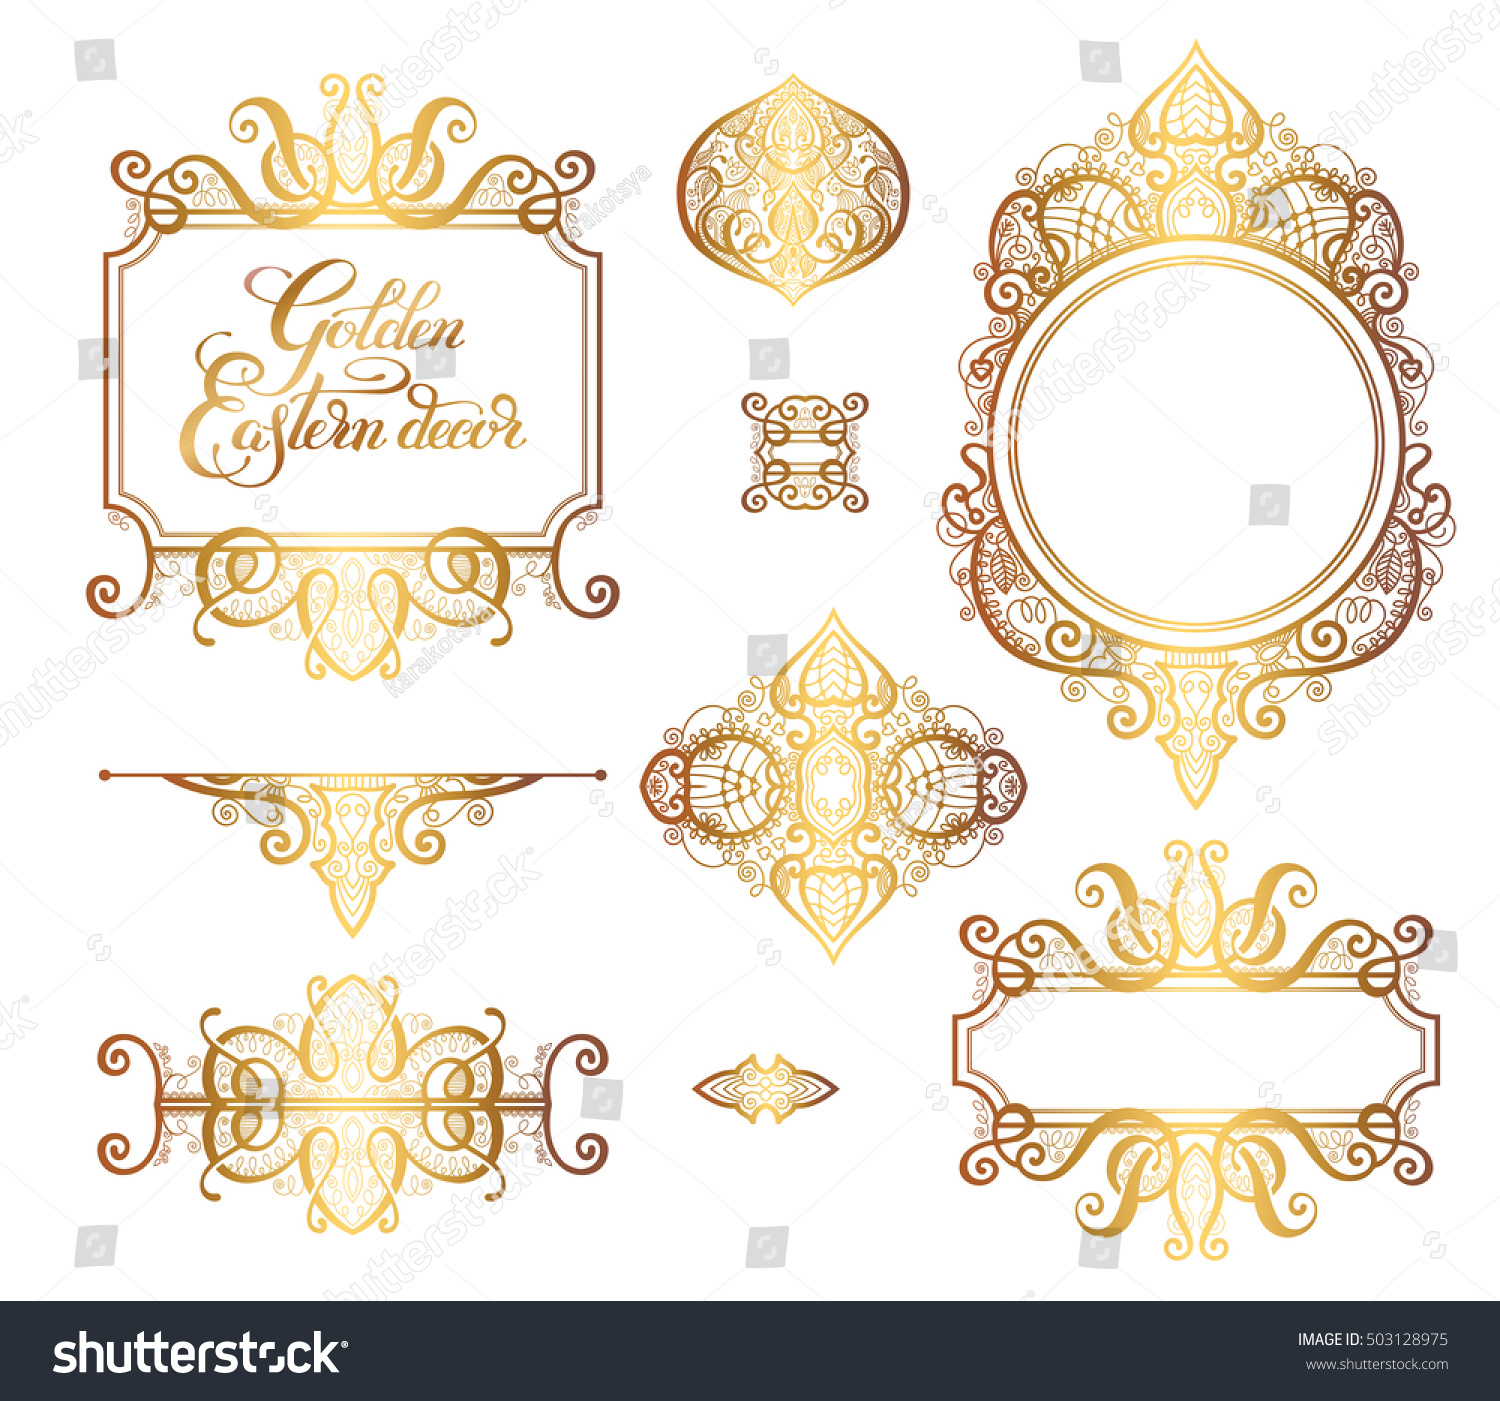 floral golden eastern decor frame elements  paisley pattern for wedding  invitation  birthday greeting card. Floral Golden Eastern Decor Frame Elements Stock Vector 503128975